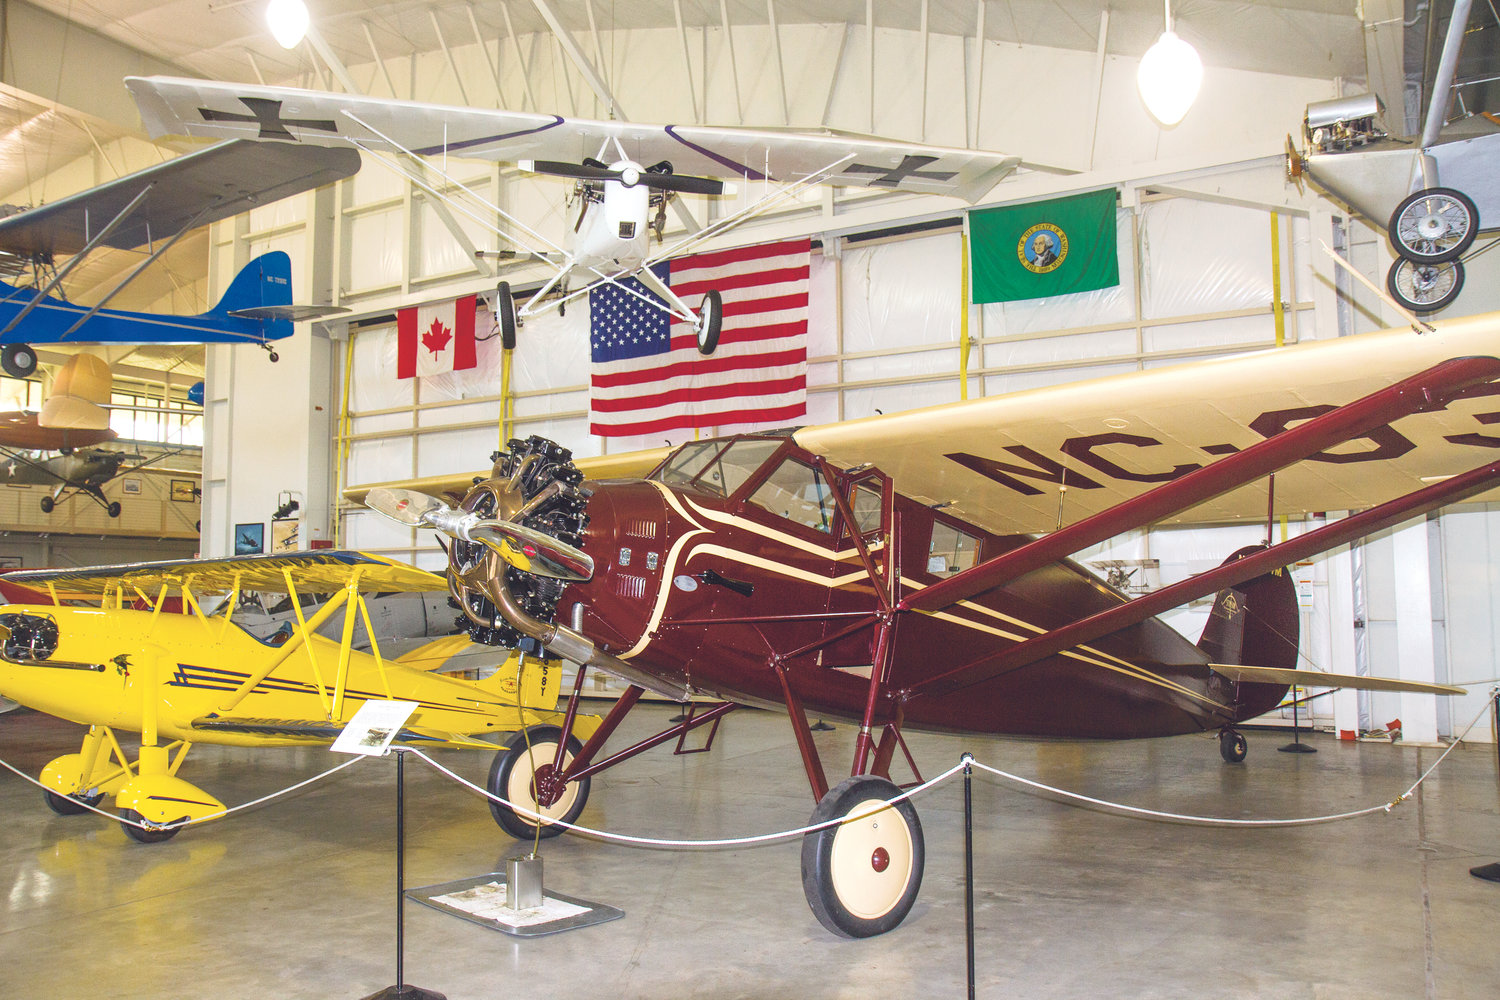 The Port Townsend Aero Museum currently has more than 20 restored aircraft on display in the main hangar of the $3.5 million facility, which was built in the summer of 2008.